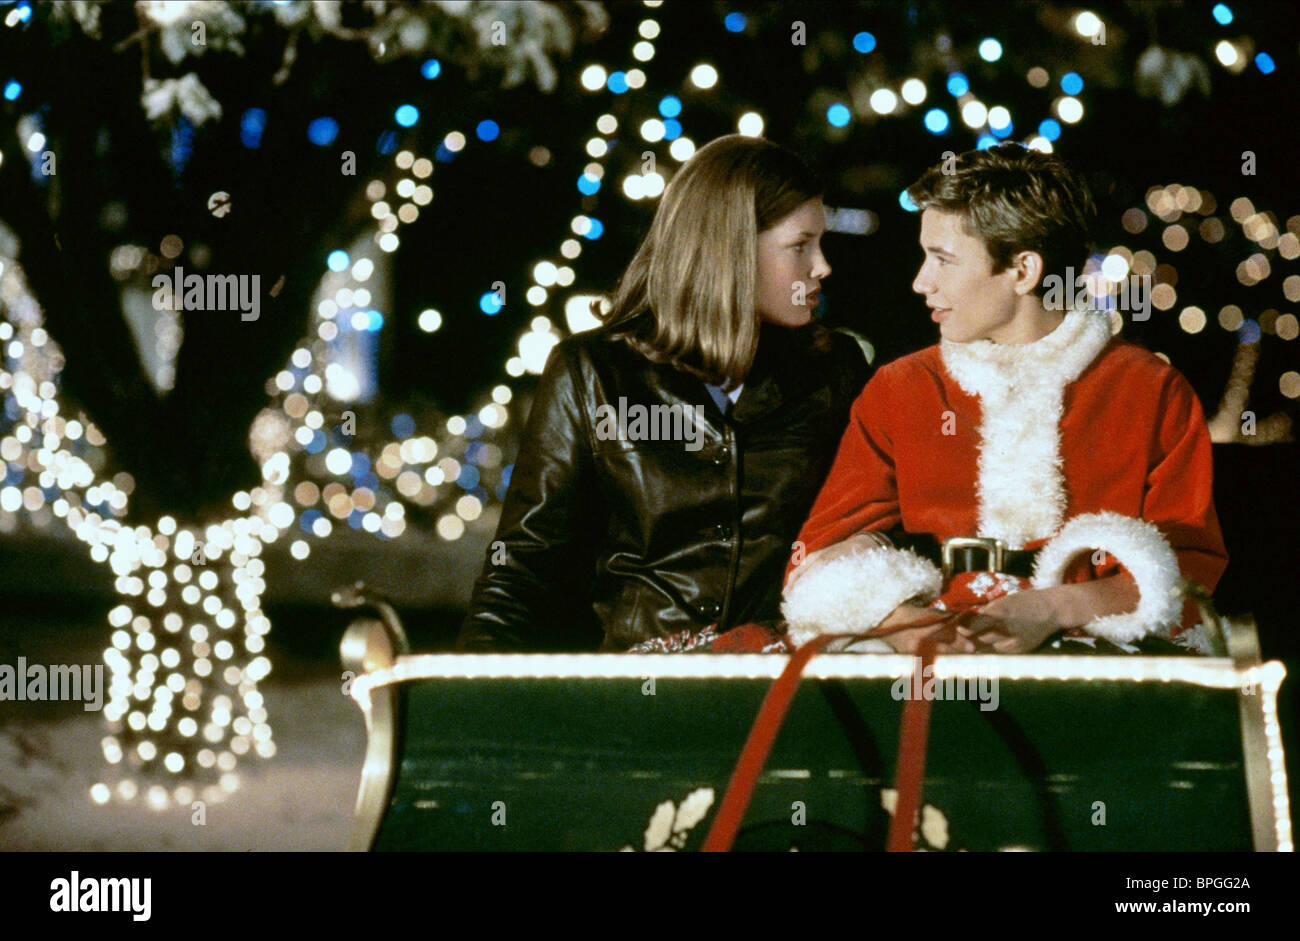 Ill Be Home For Christmas 1998.Jessica Biel Jonathan Taylor Thomas I Ll Be Home For